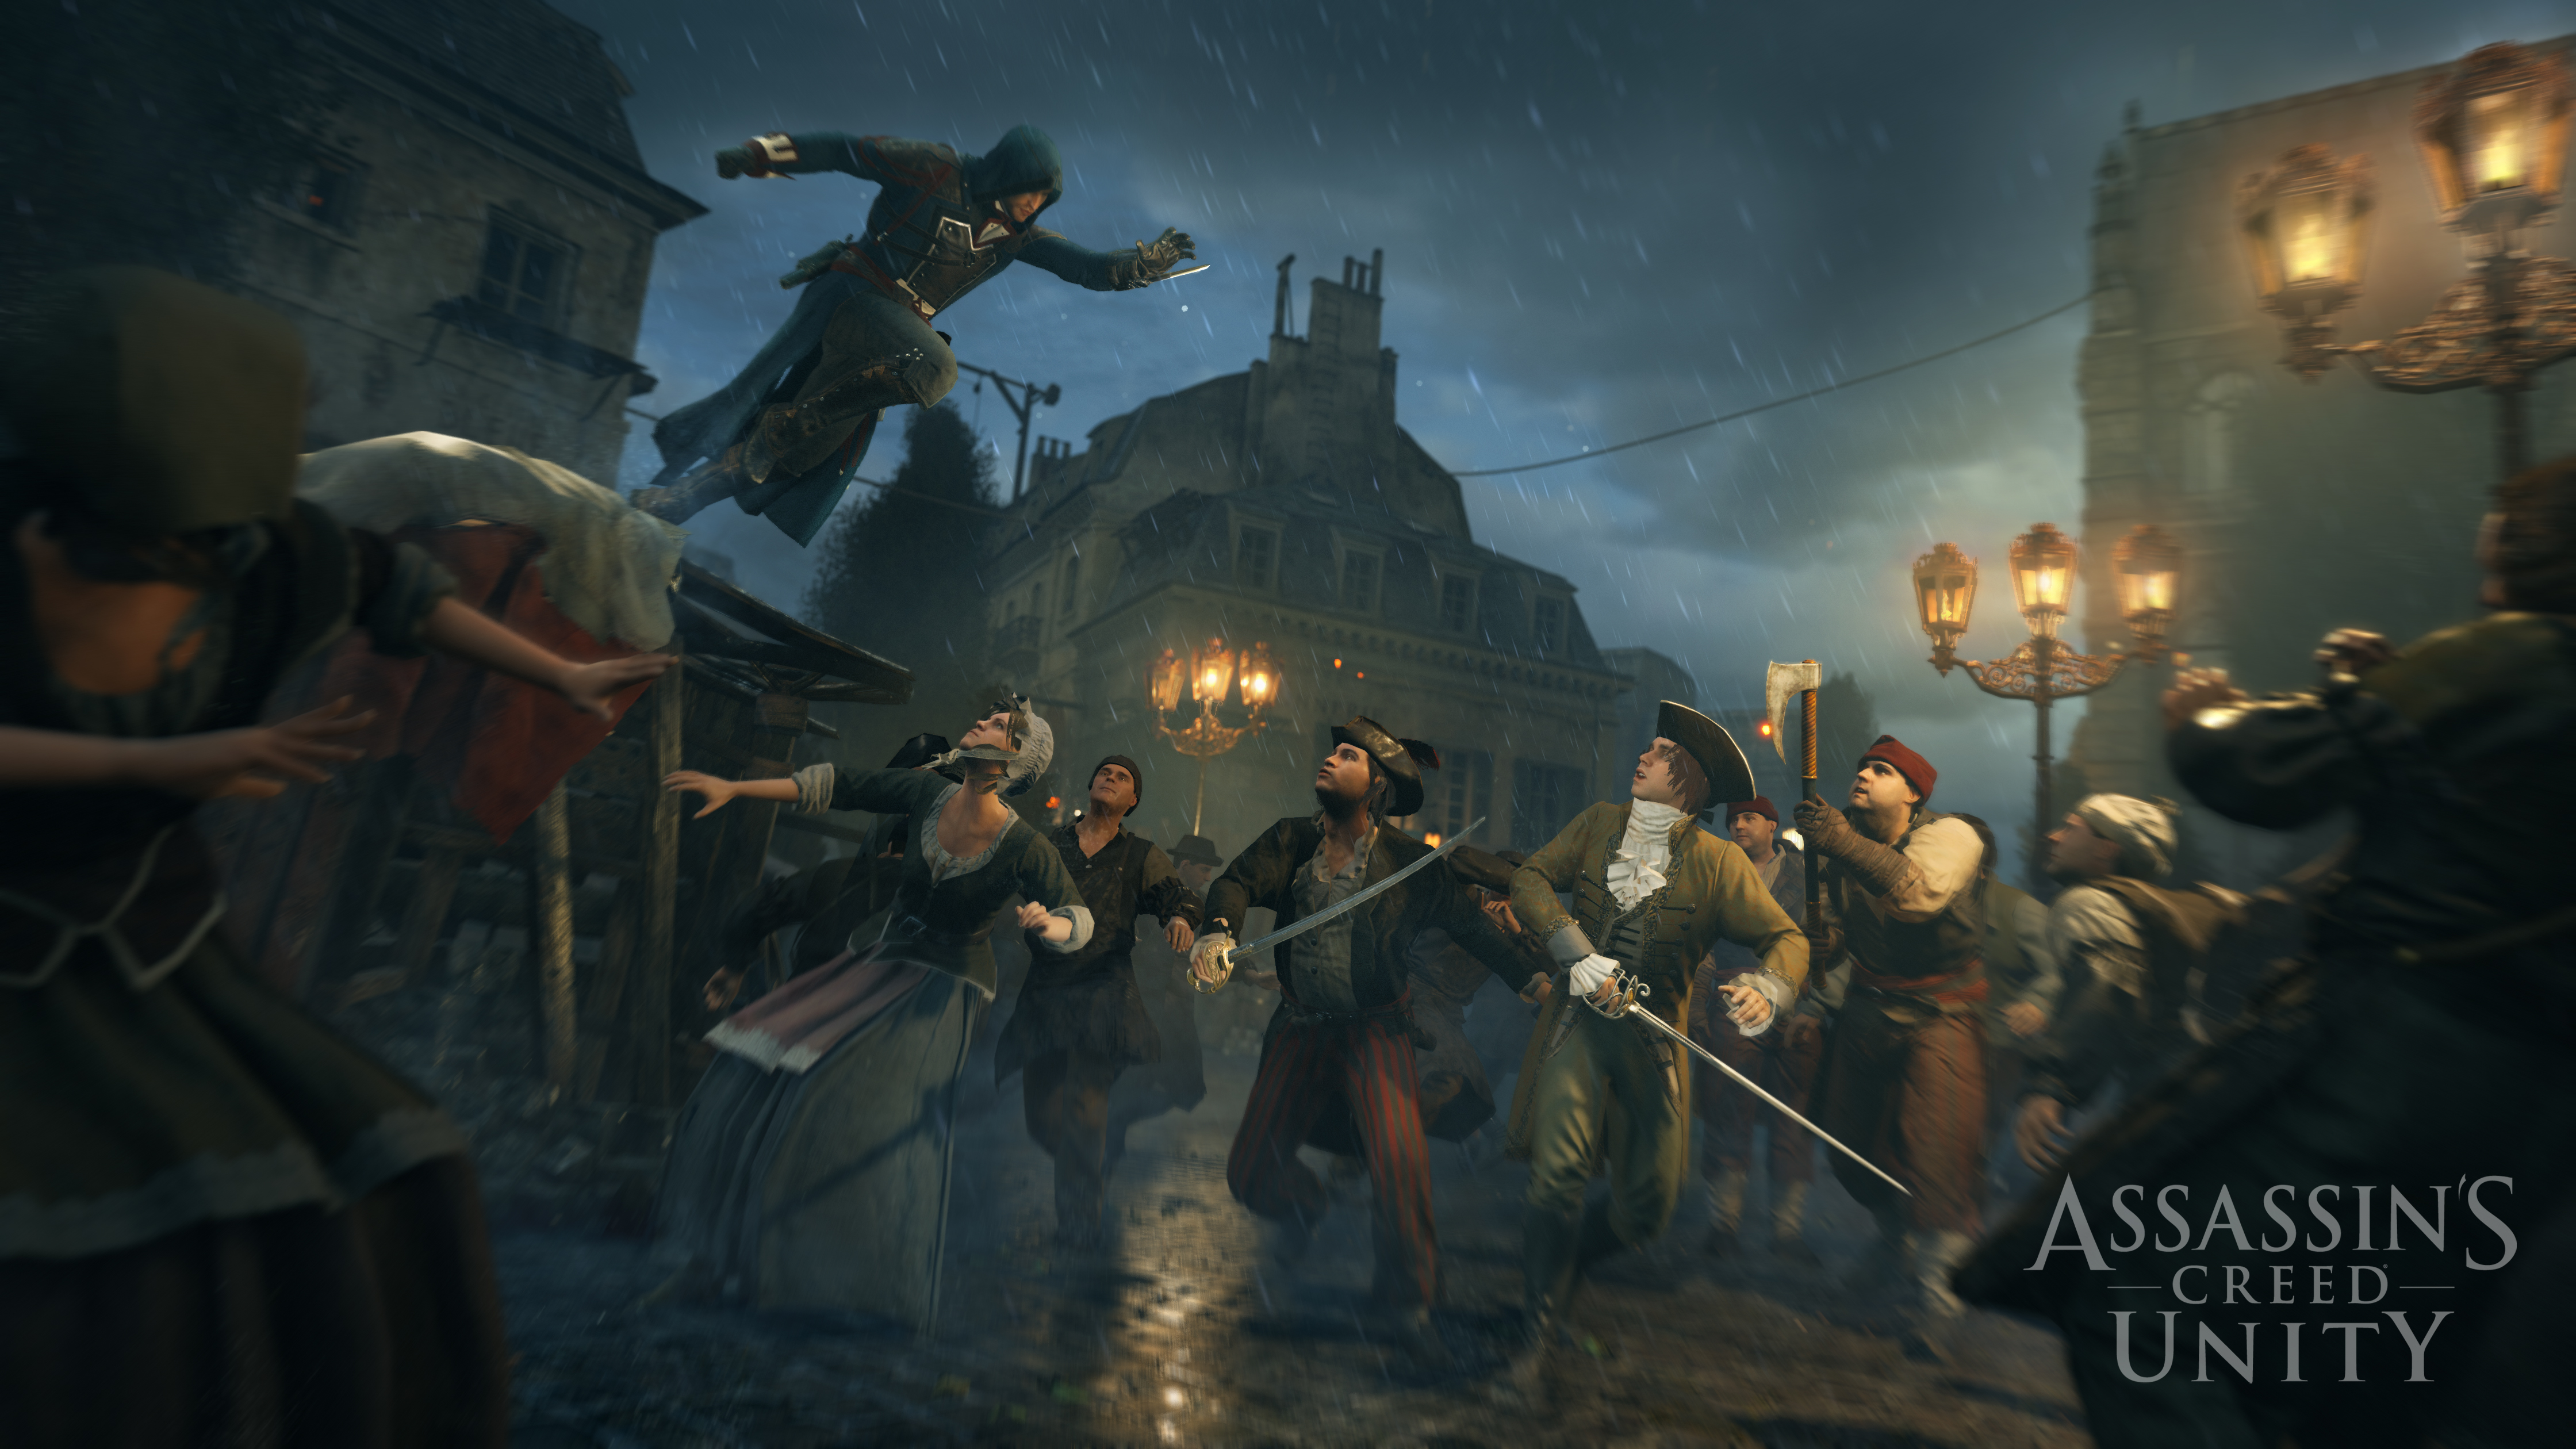 Assassins Creed: Unity is 900p and 30 fps on PS4 and Xbox